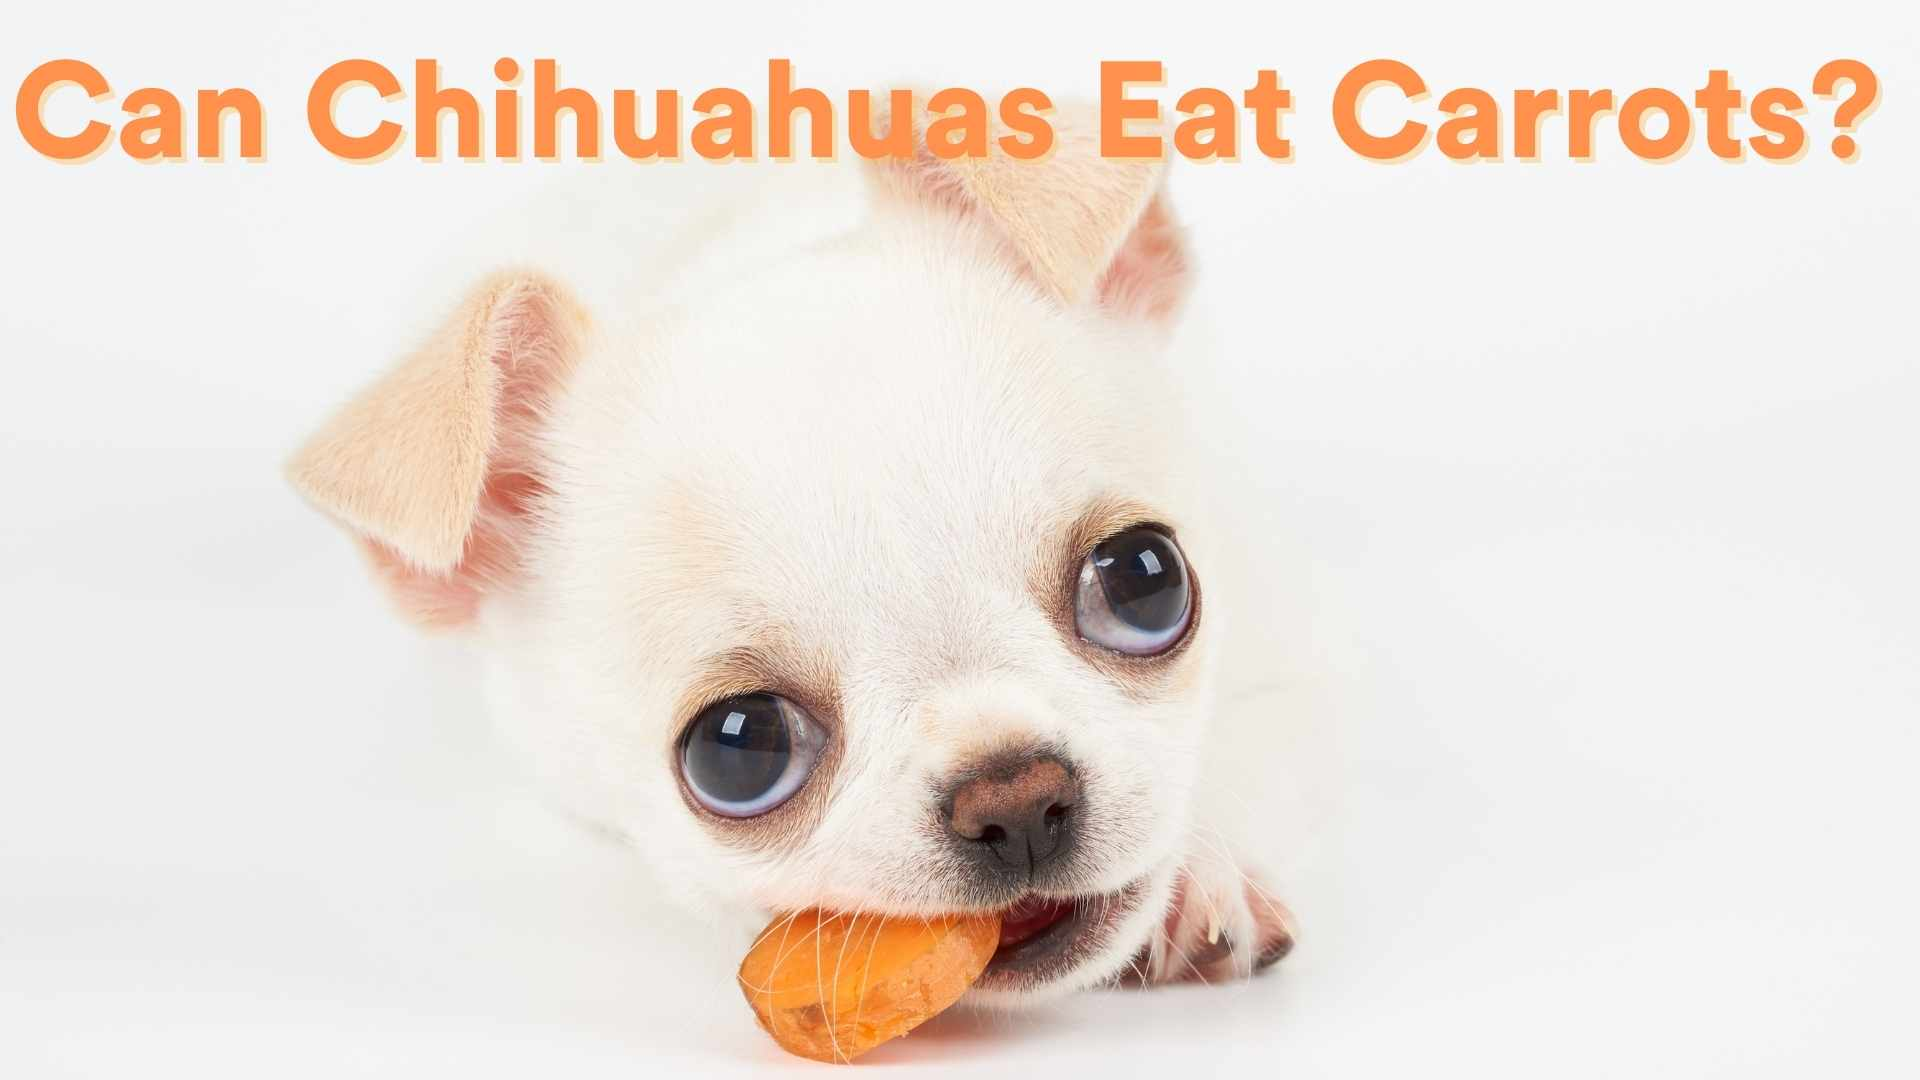 Can Chihuahuas Eat Carrots?